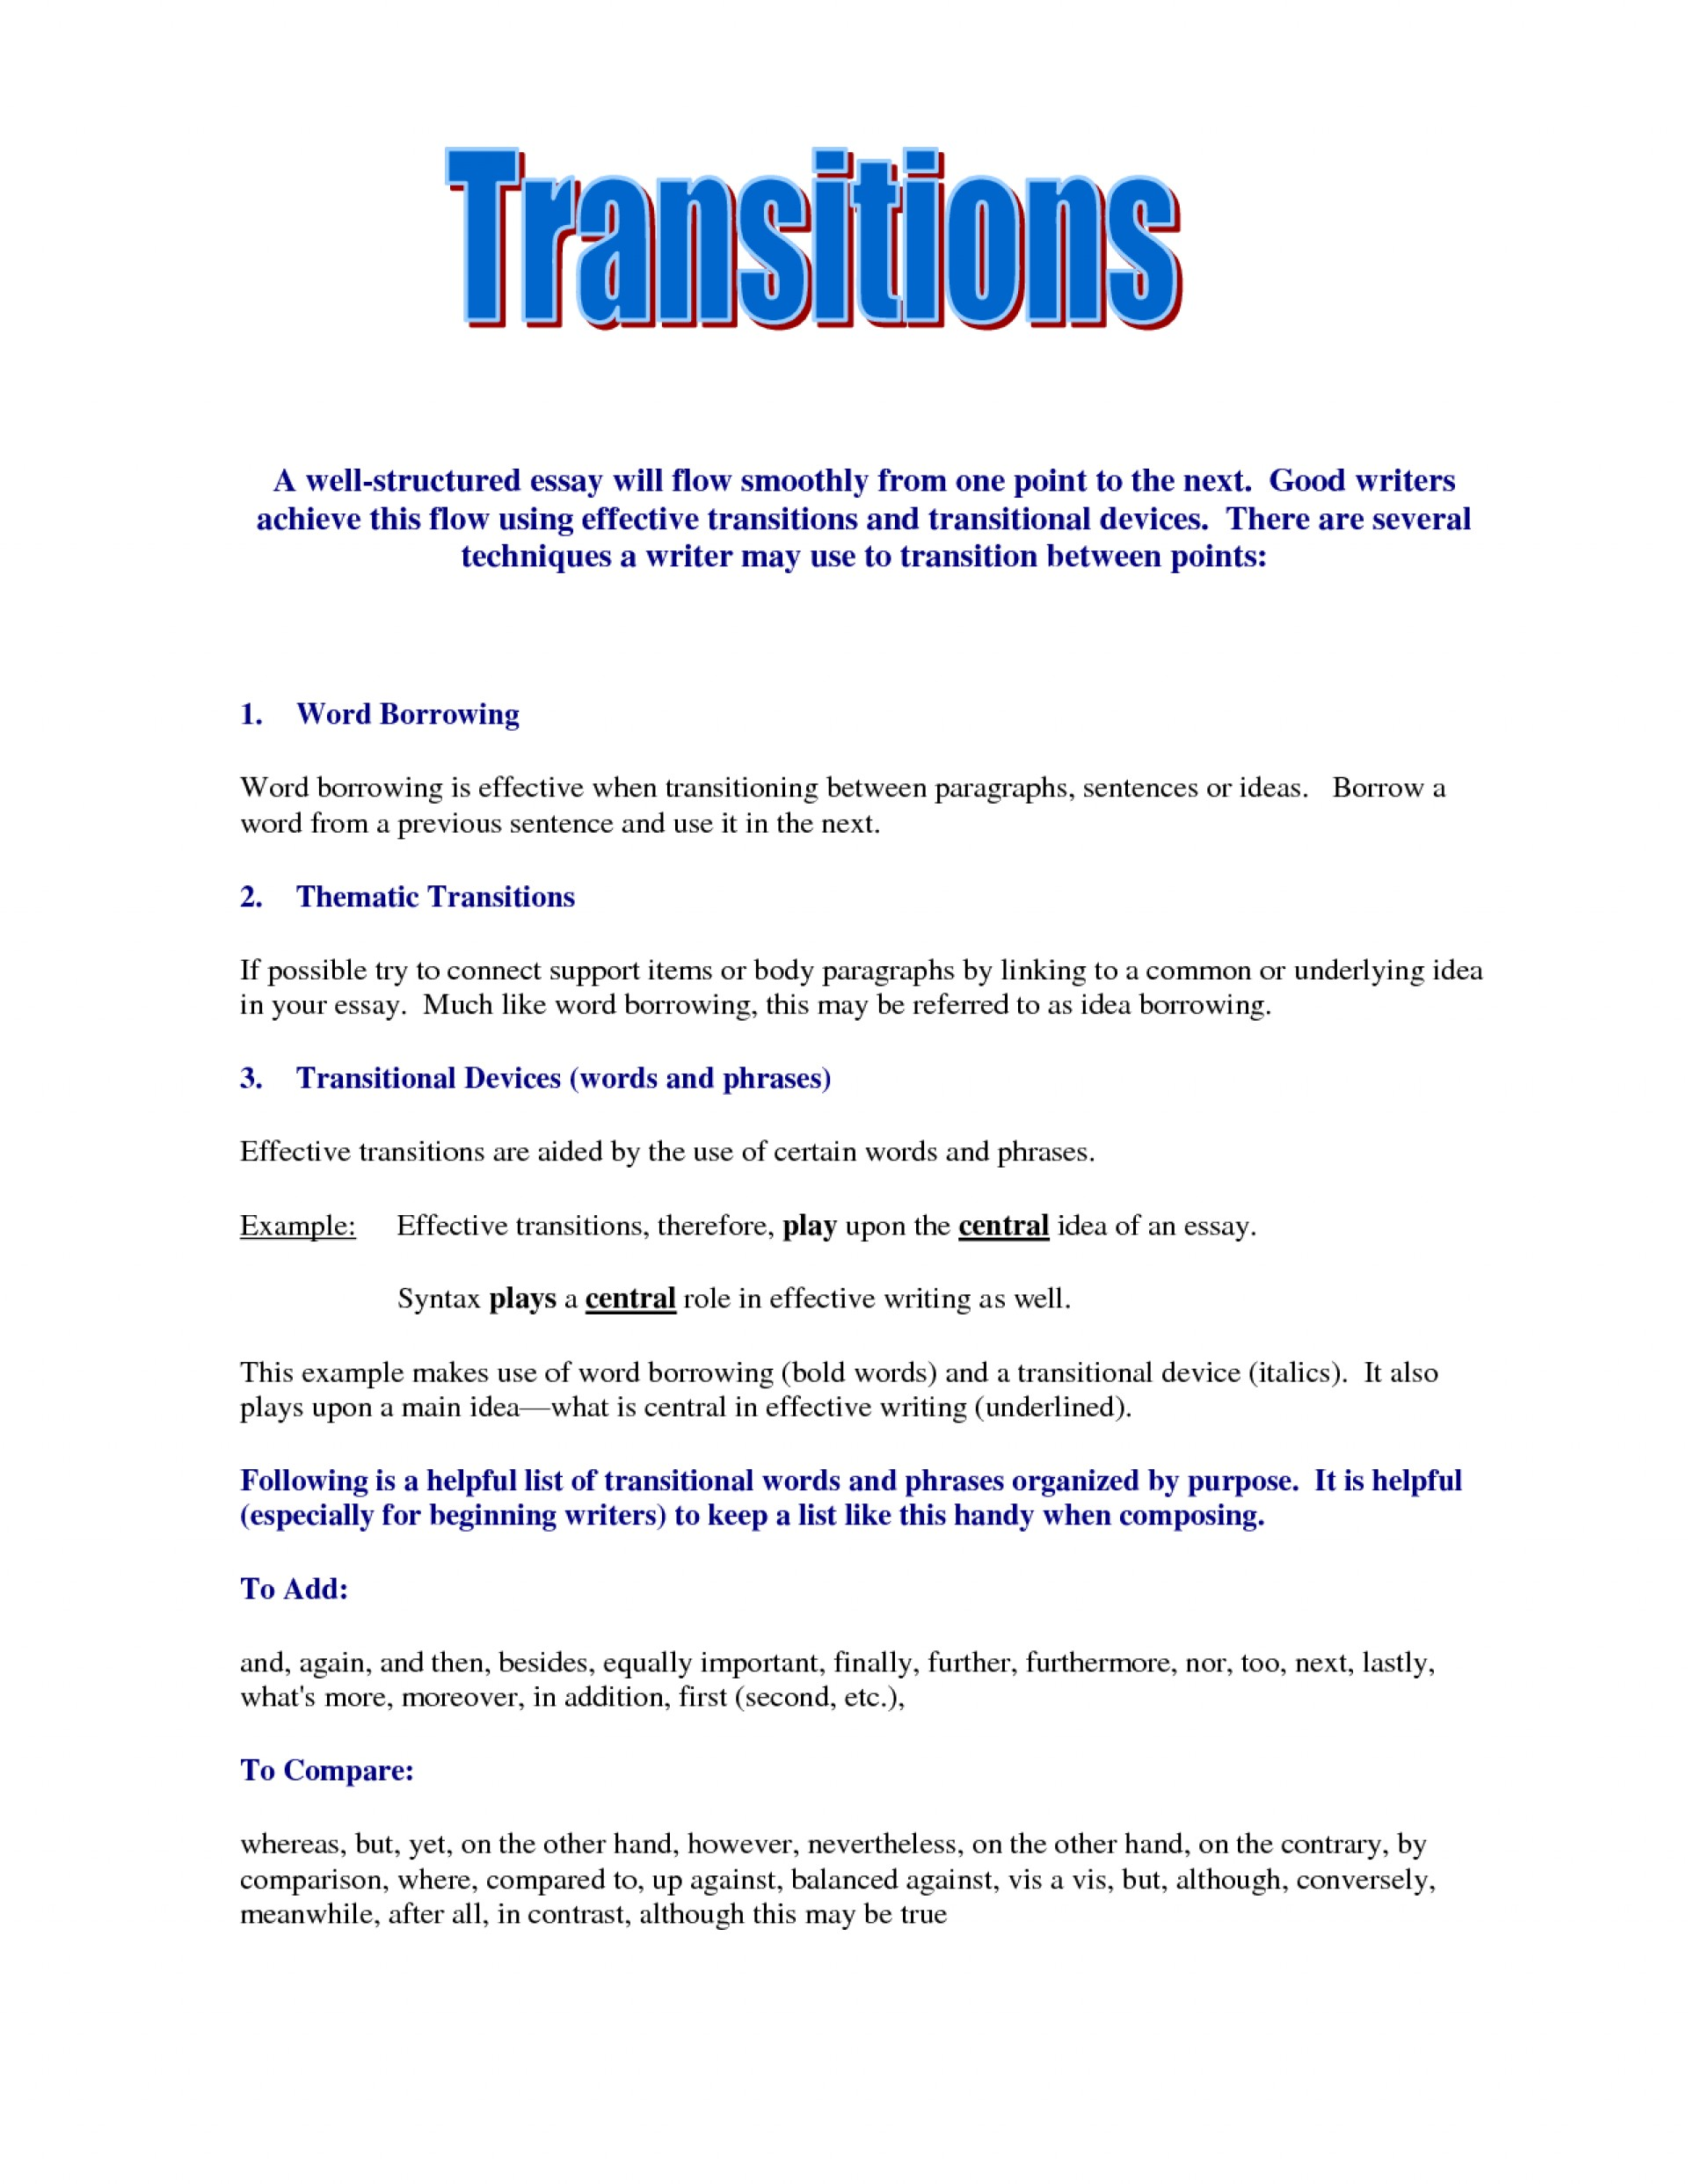 023 Good Essay Transitions Example Awesome Collection Of Transition Sentences Examples For Essays Your Stupendous Conclusion Paper 1920